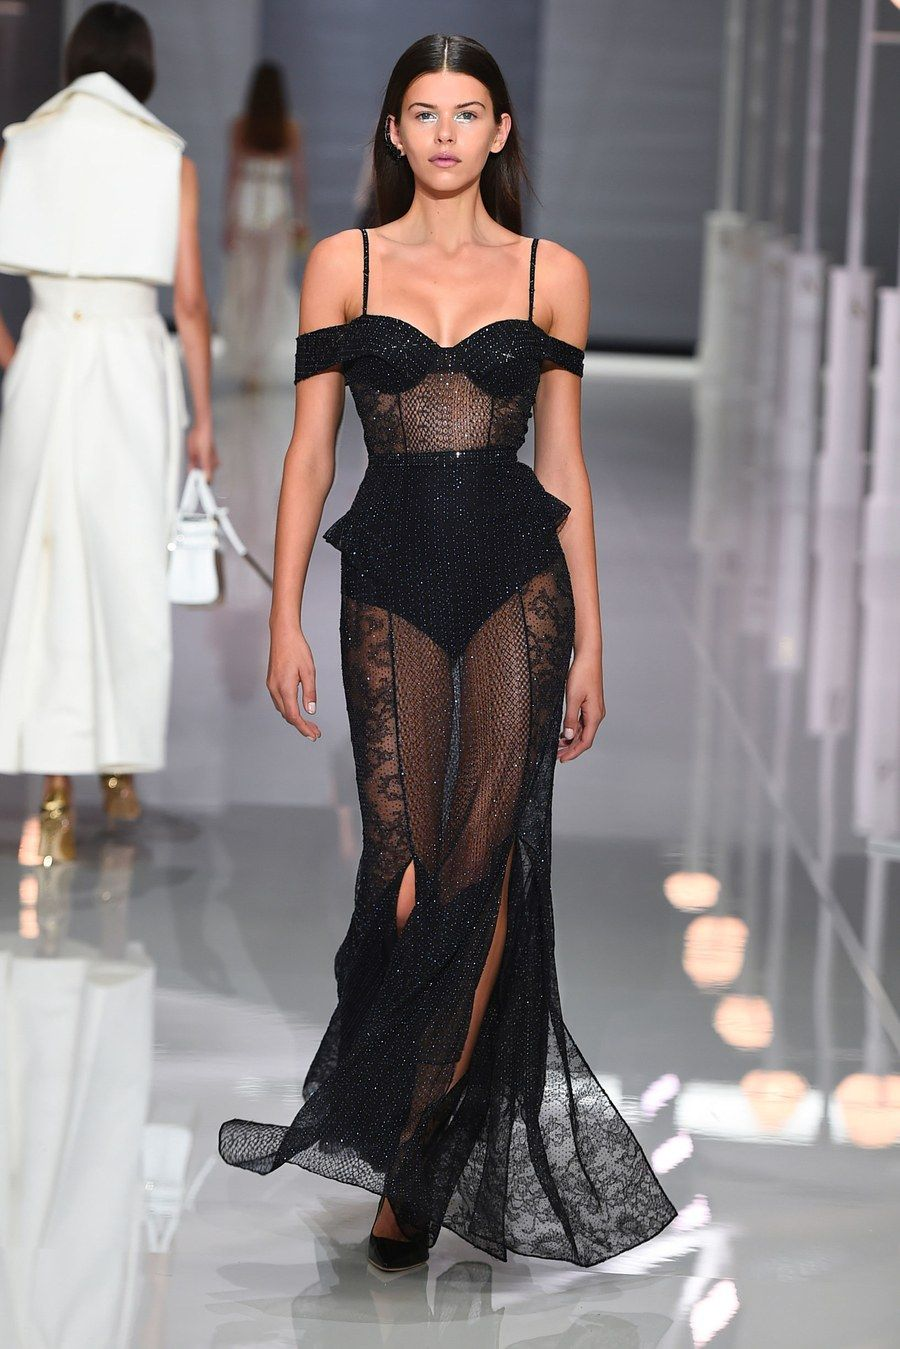 569f73553cd3 Ralph   Russo Spring 2018 Ready-to-Wear Fashion Show